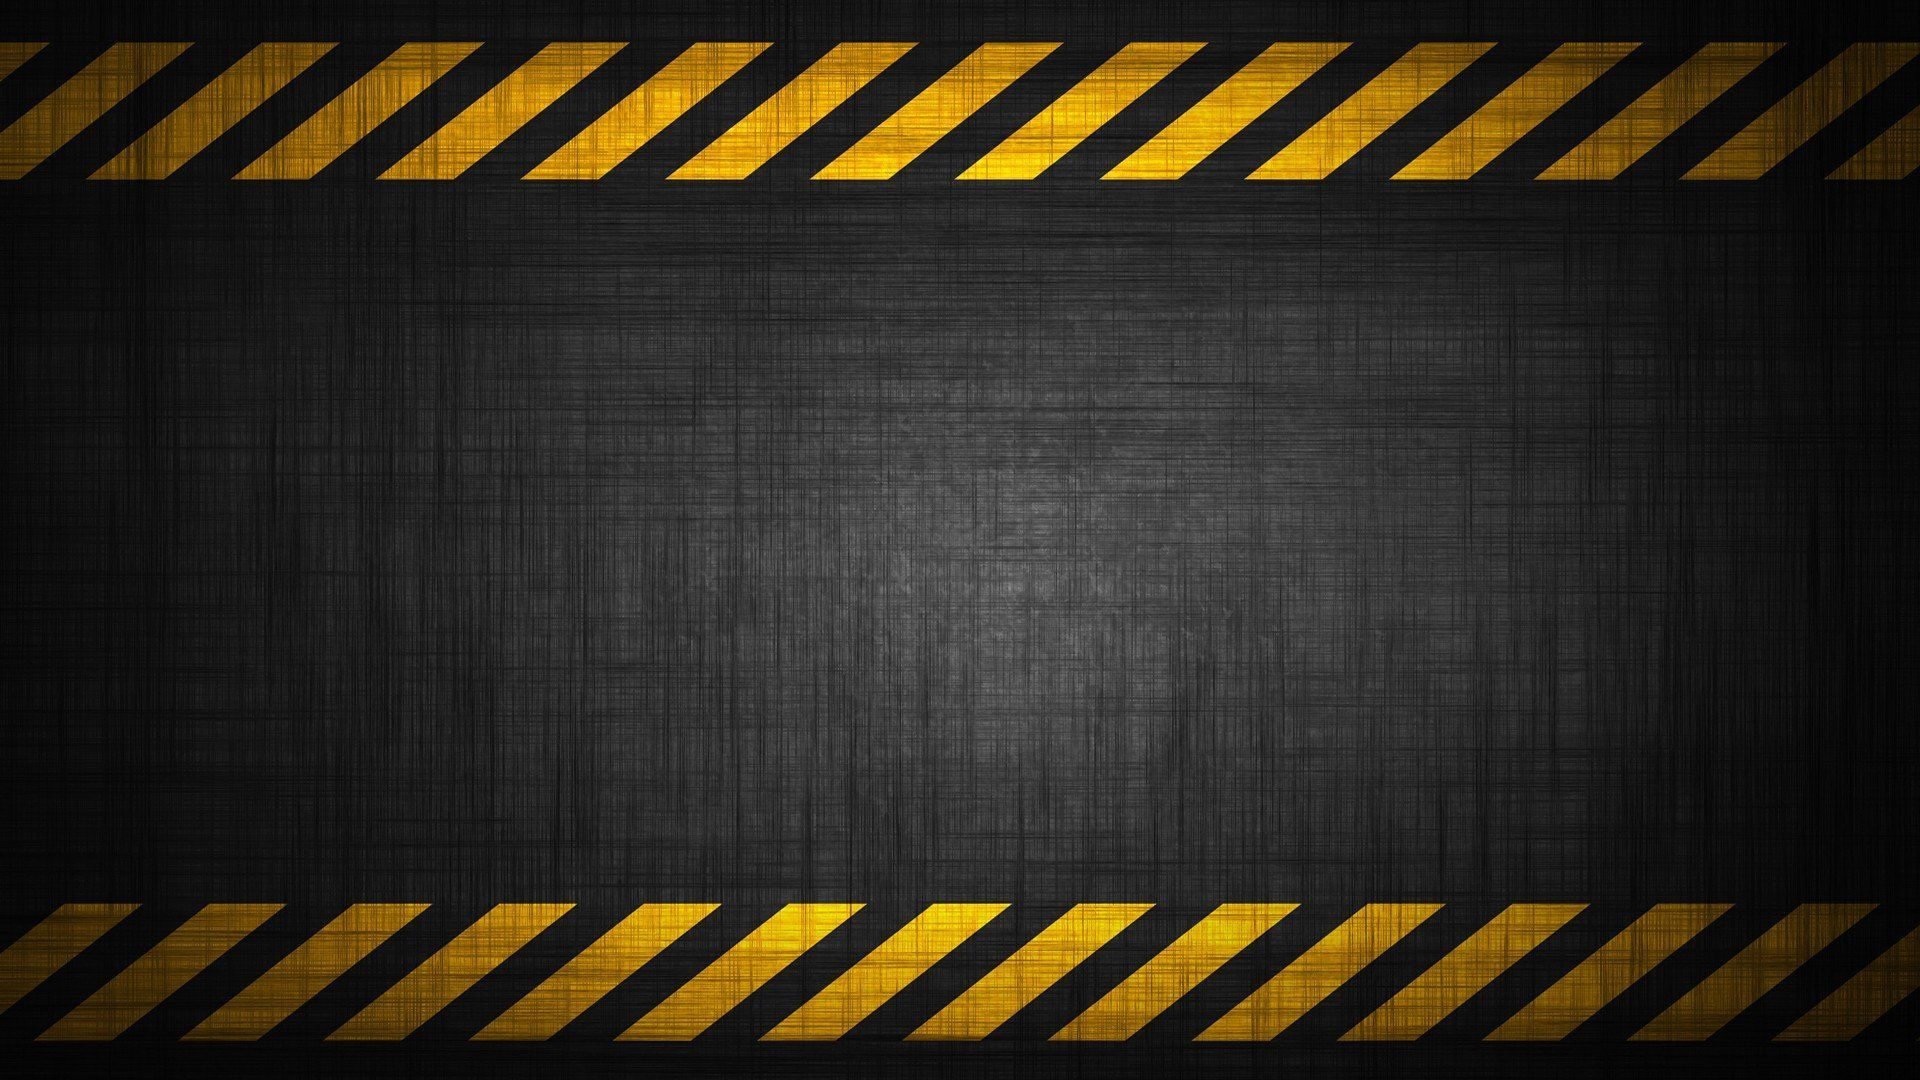 1920x1080 Caution tape warning background image | Black wallpaper ...